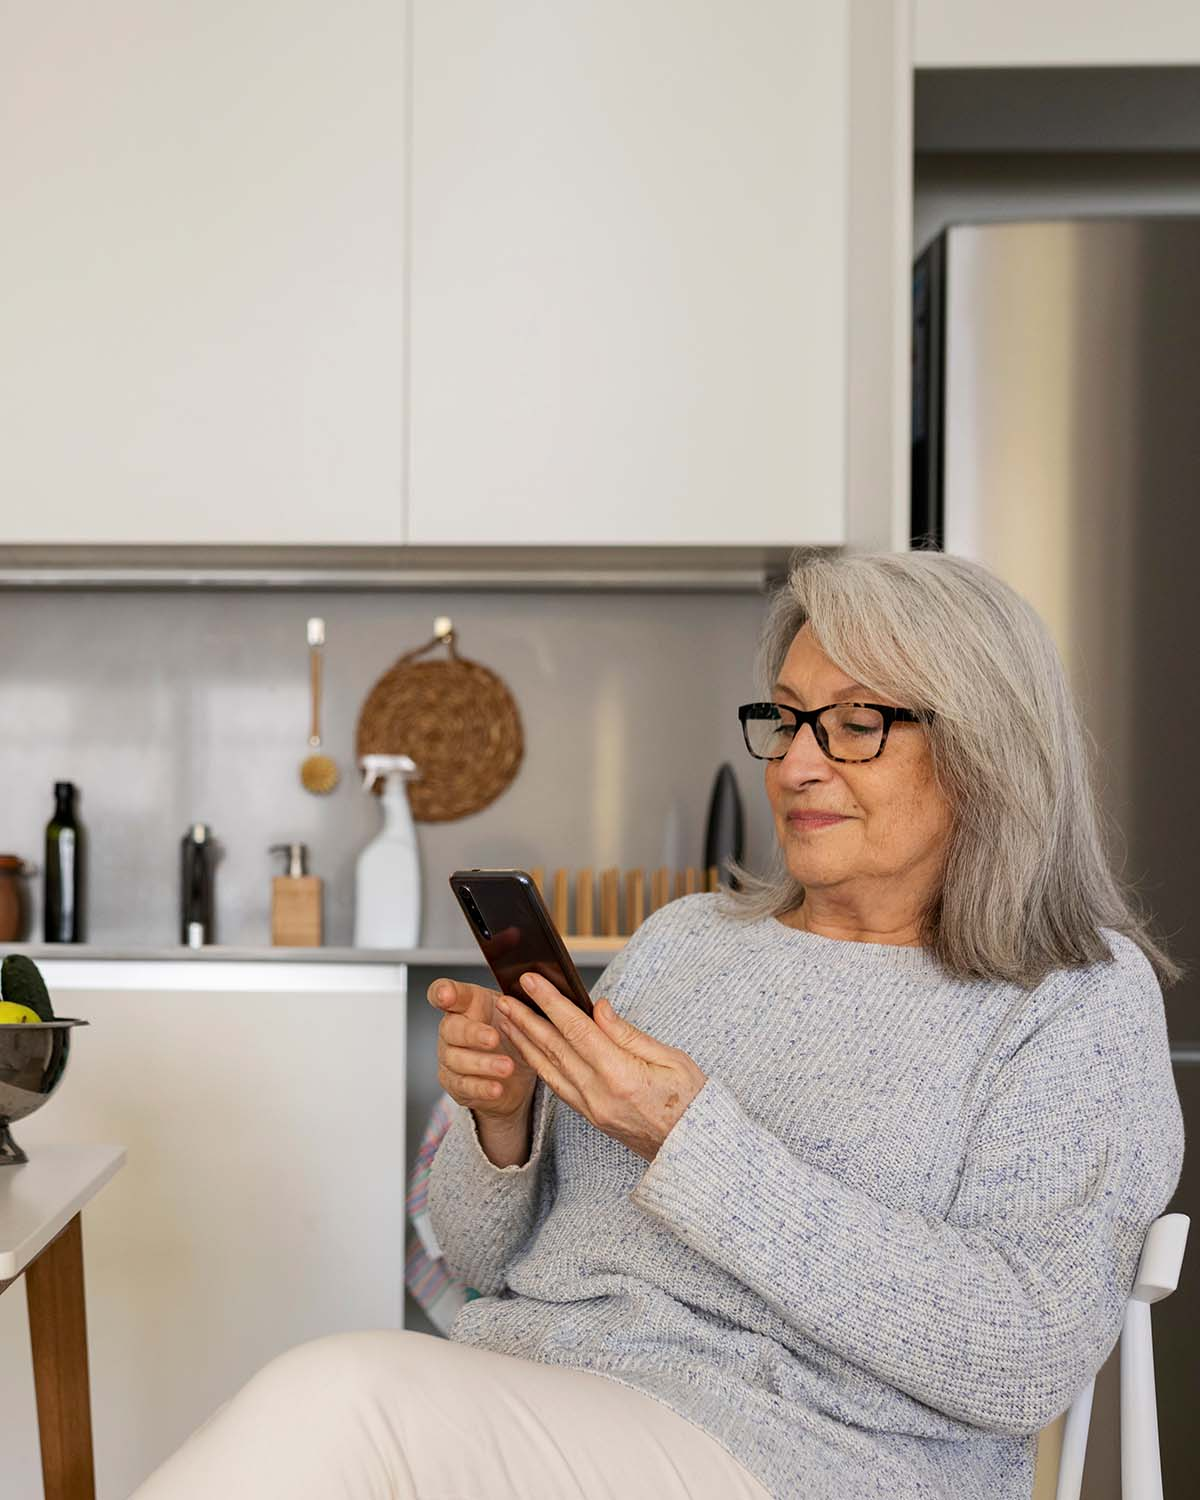 A woman sits in her kitchen and looks at her phone